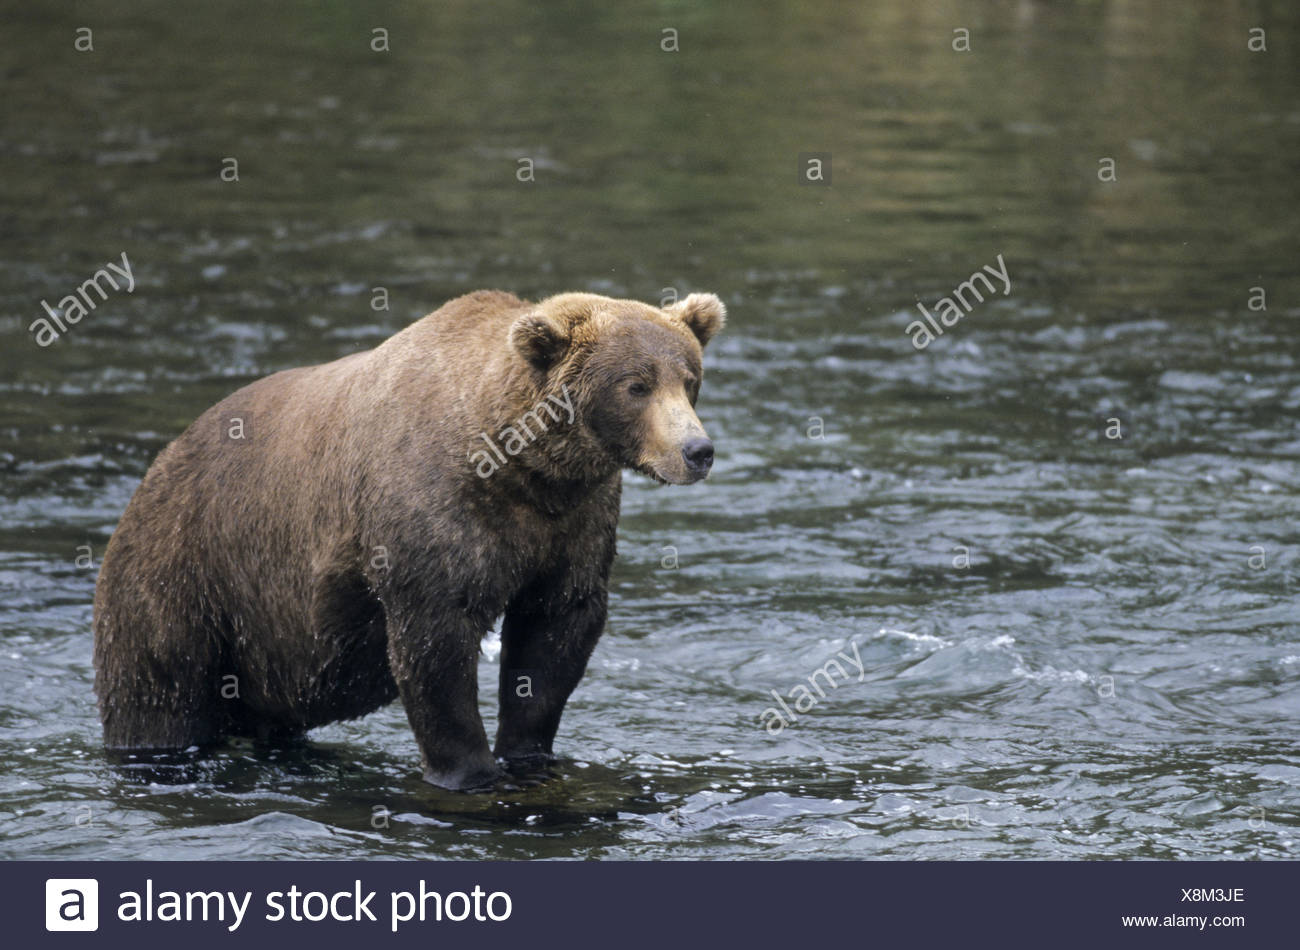 One Grizzly Bear catching Salmon in Brooks River - Stock Image